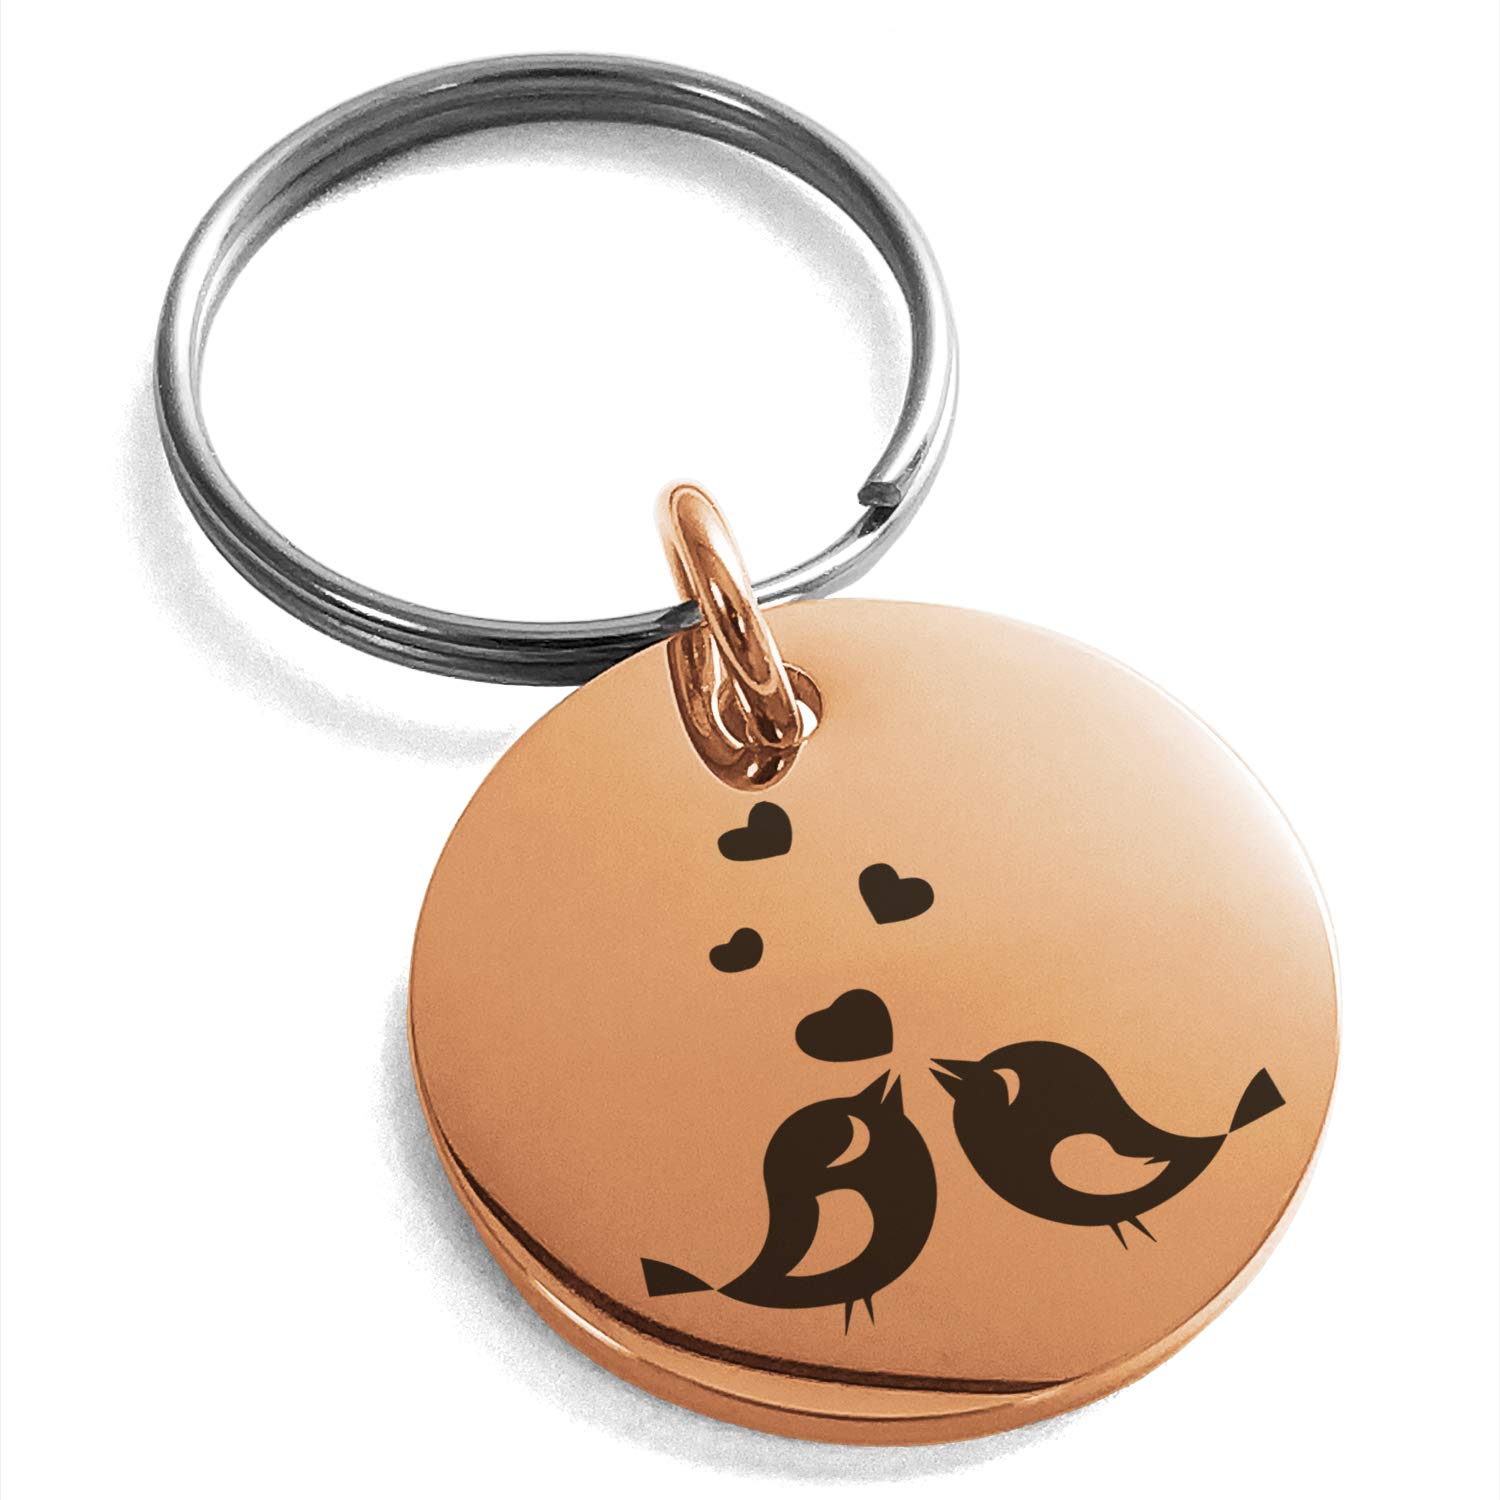 Tioneer Rose Gold Plated Stainless Steel Lovebirds Heart Engraved Small Medallion Circle Charm Keychain Keyring by Tioneer (Image #1)